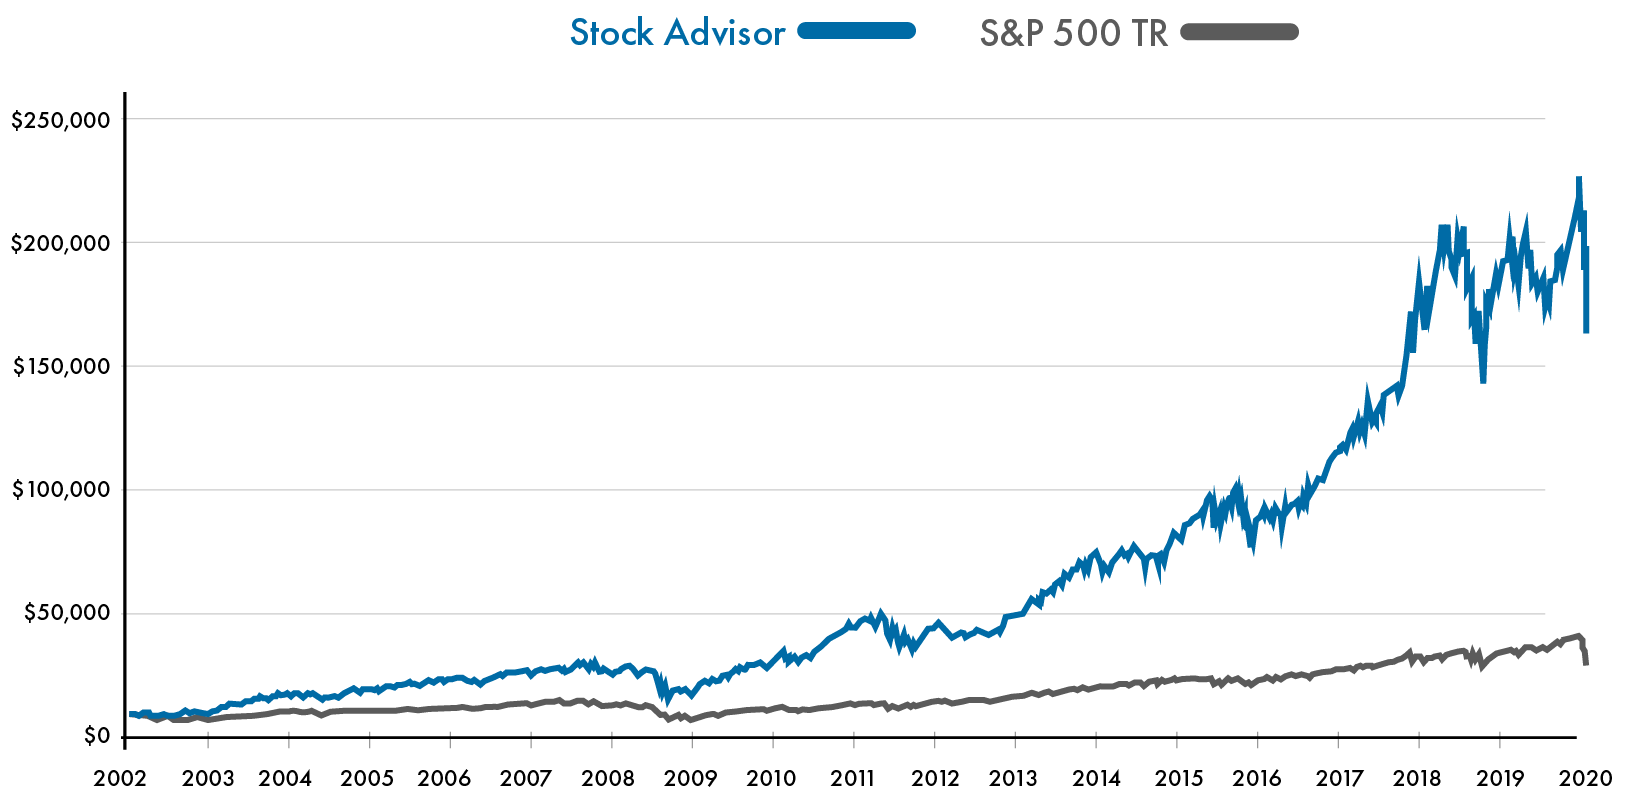 Motley Fools Stock Advisor has out performed the market by over 200% over the last 18 years